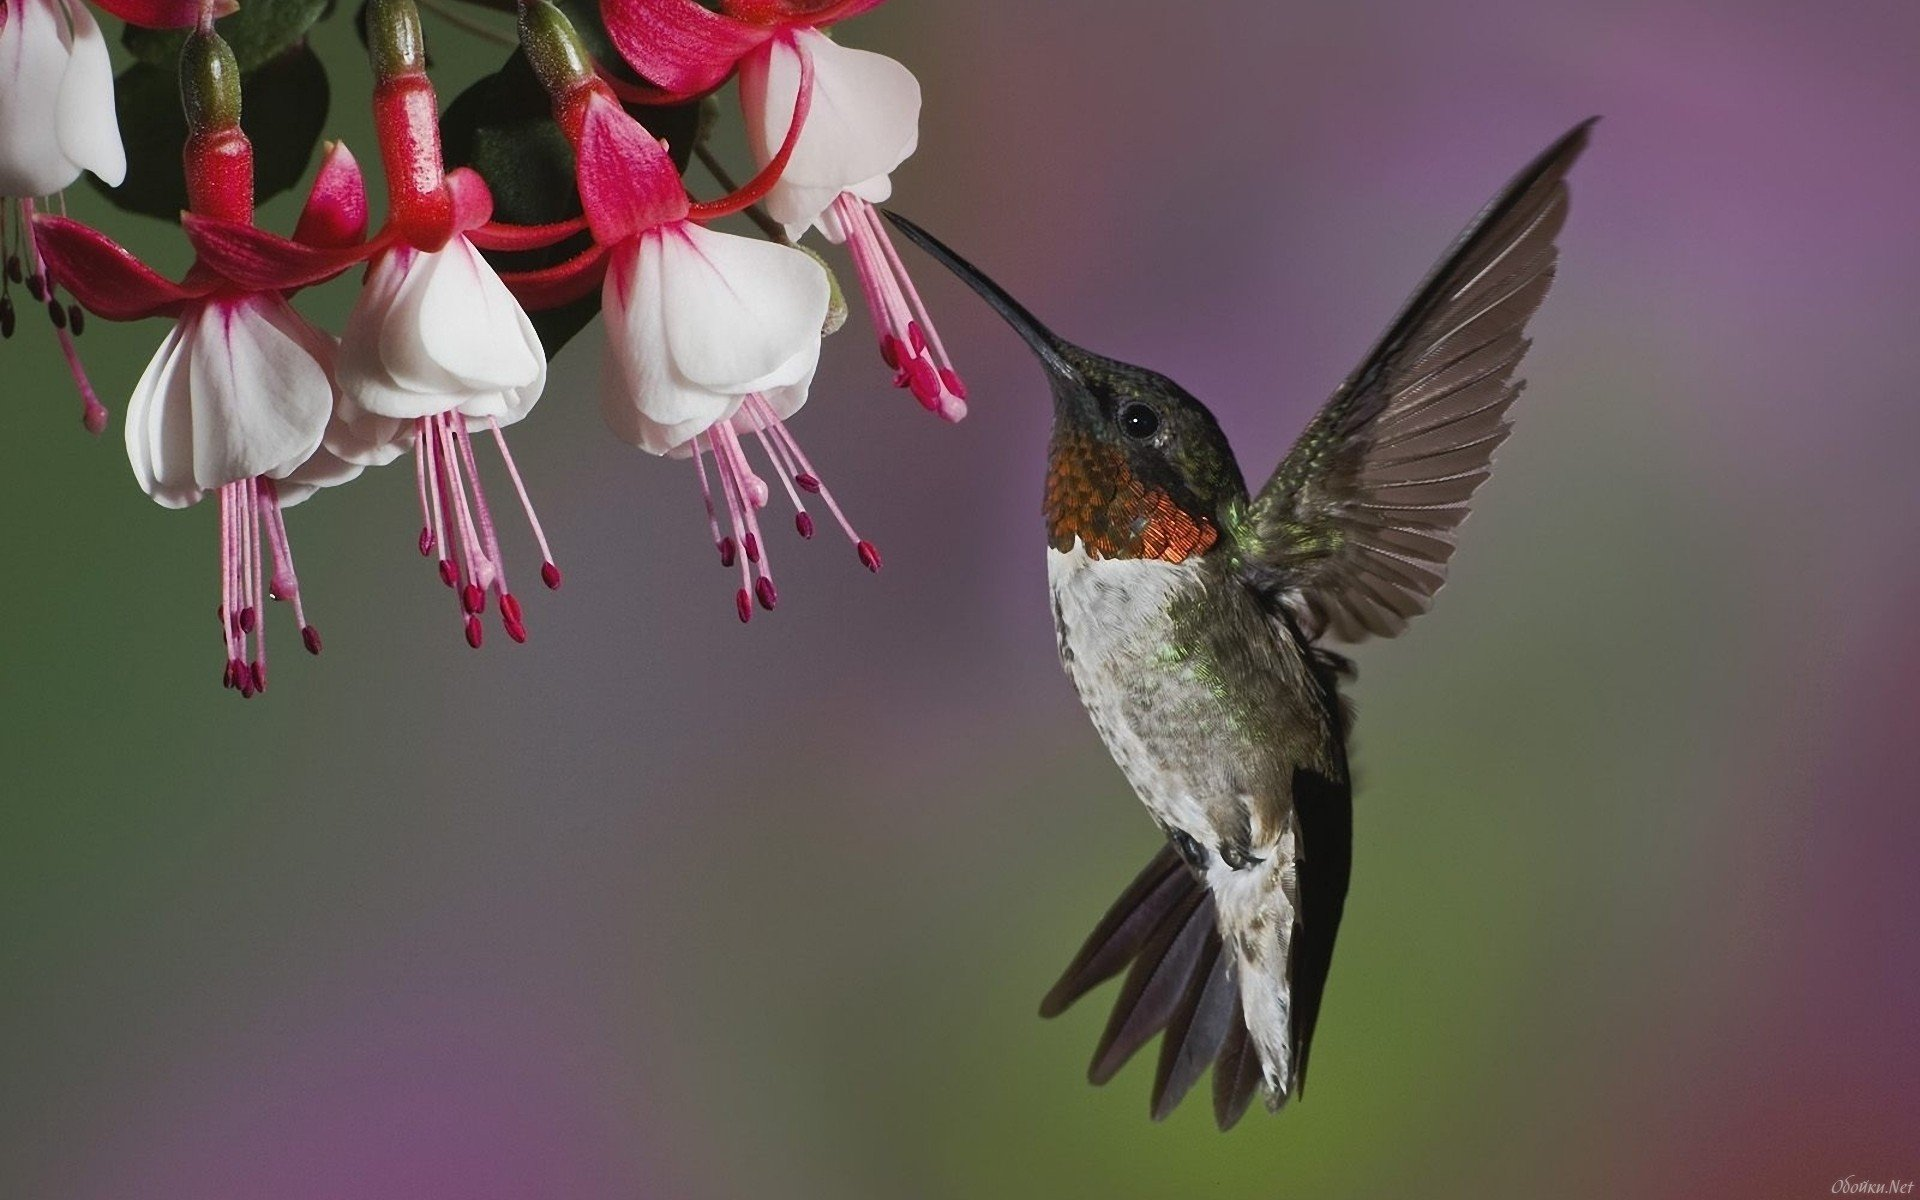 Awesome Hummingbird free wallpaper ID:215654 for hd 1920x1200 desktop